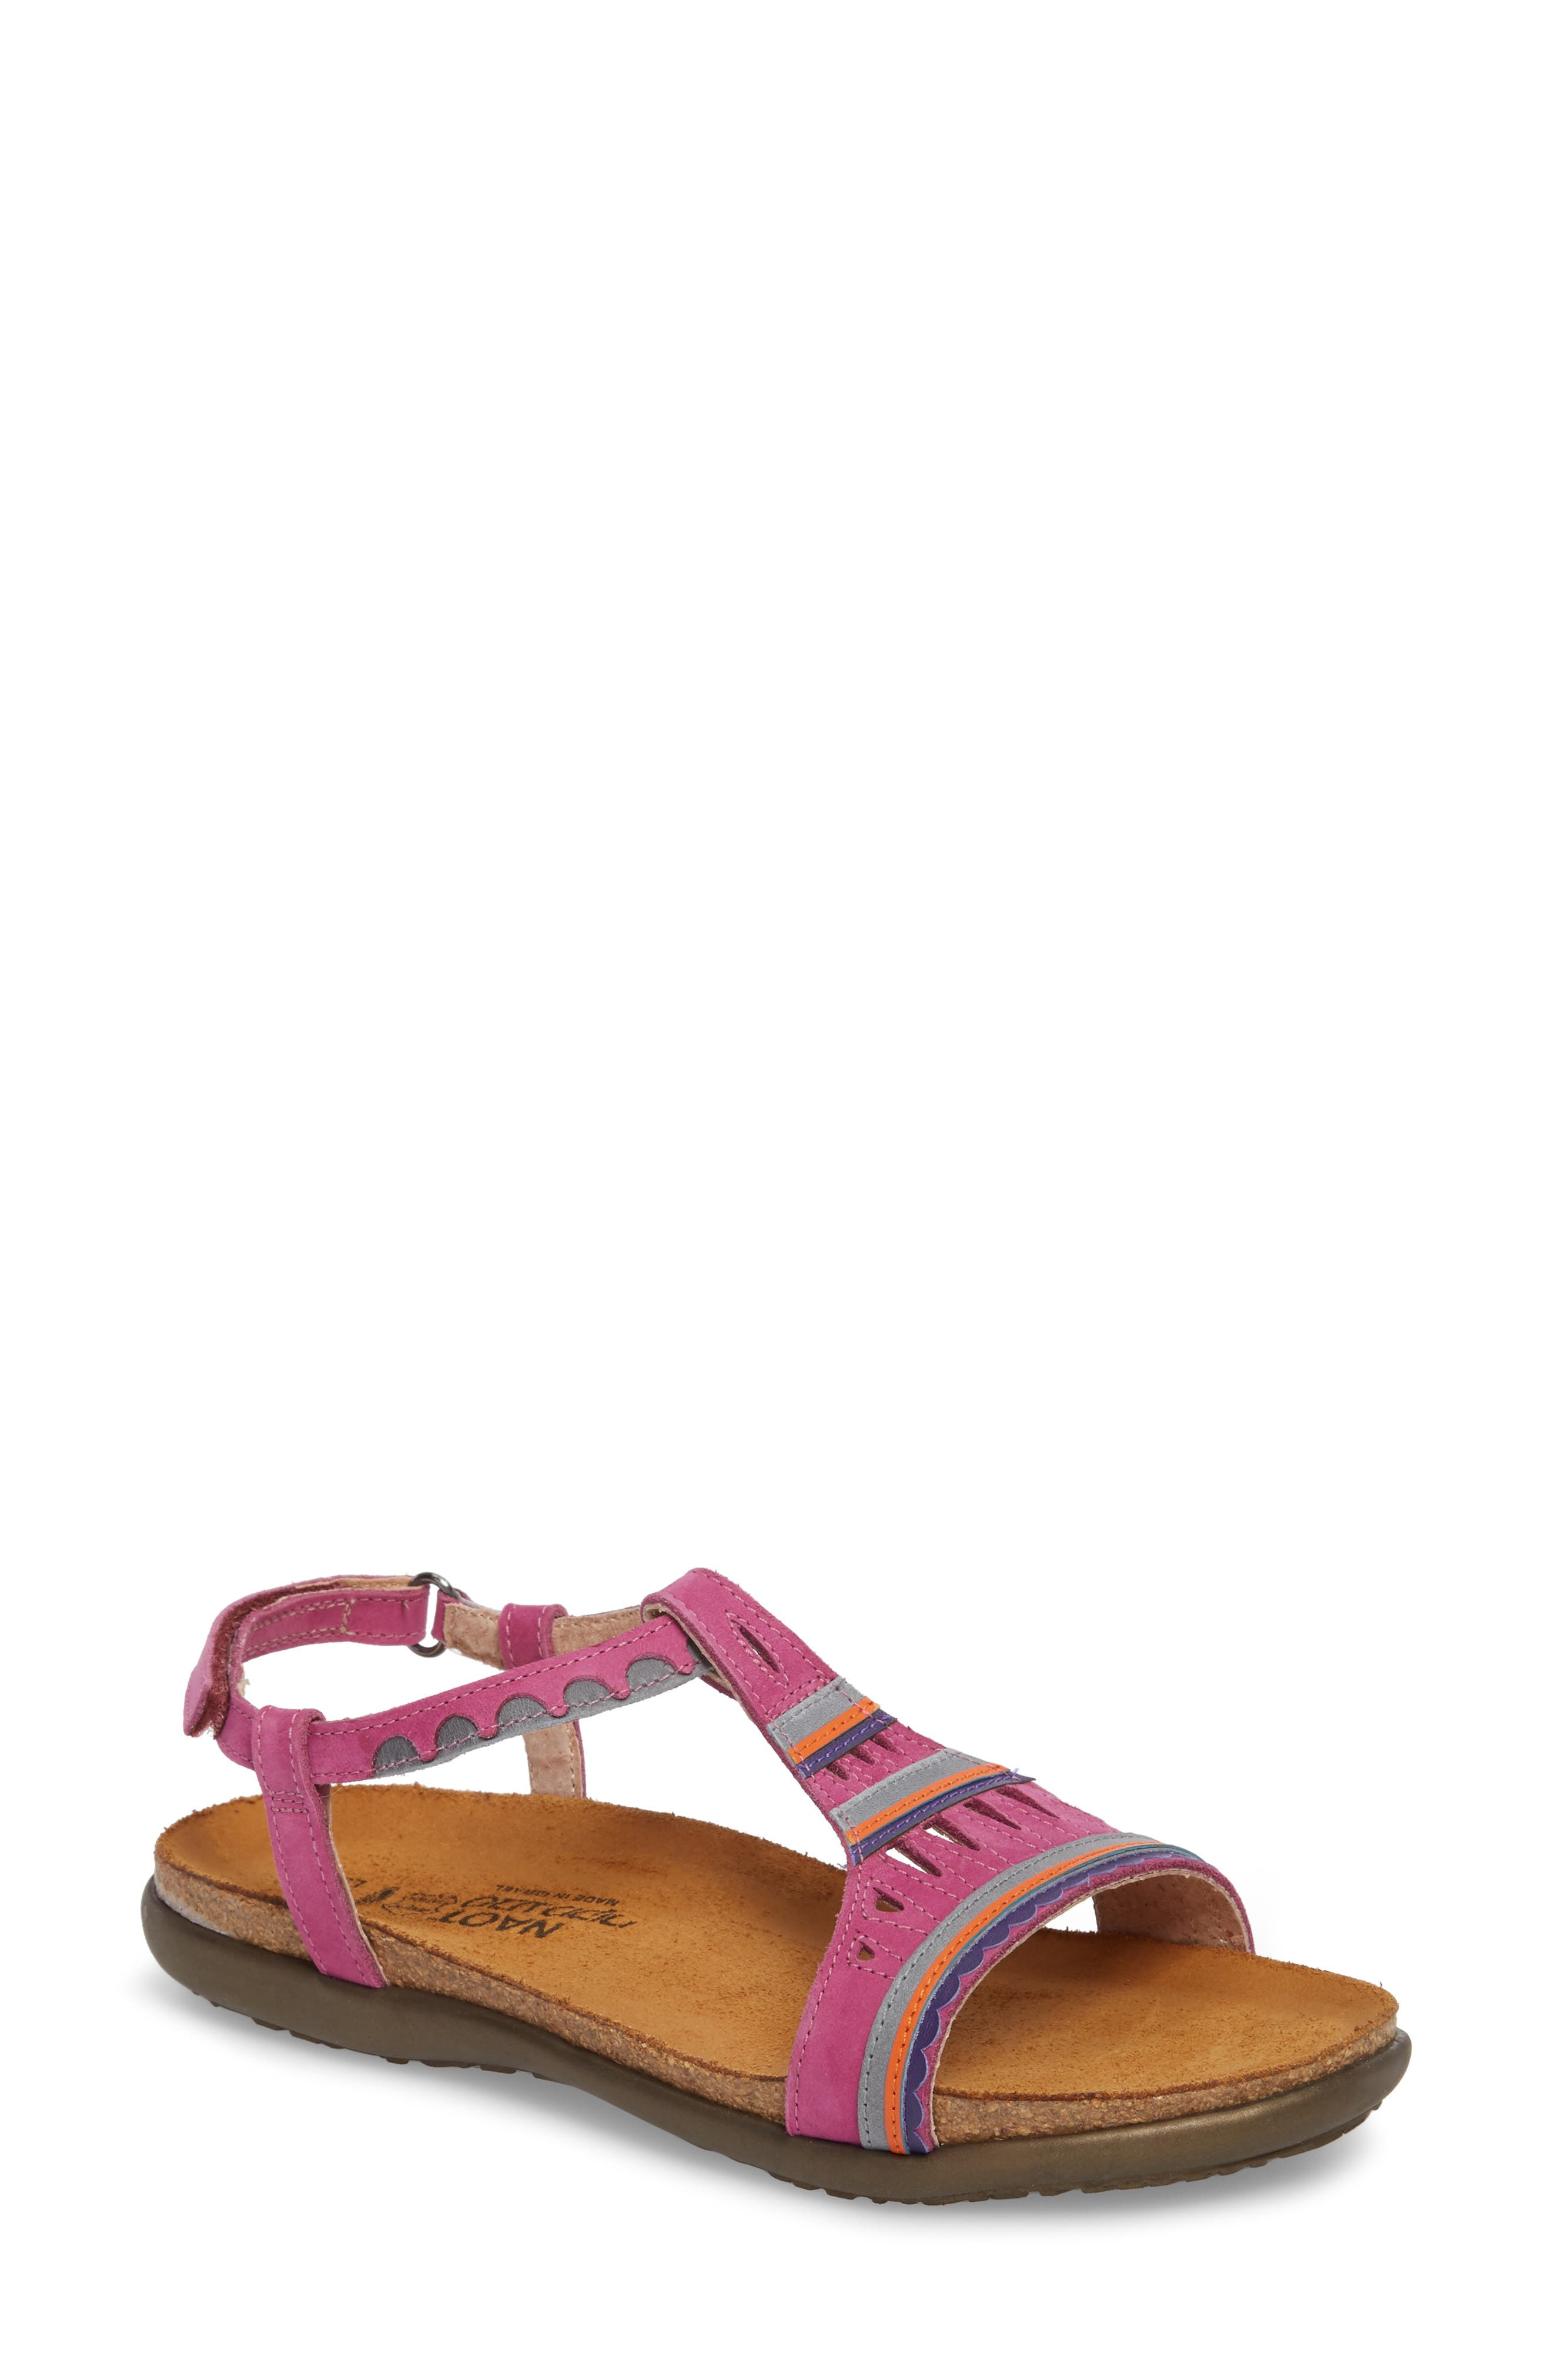 Odelia Perforated T-Strap Sandal,                             Main thumbnail 1, color,                             Pink Plum Nubuck